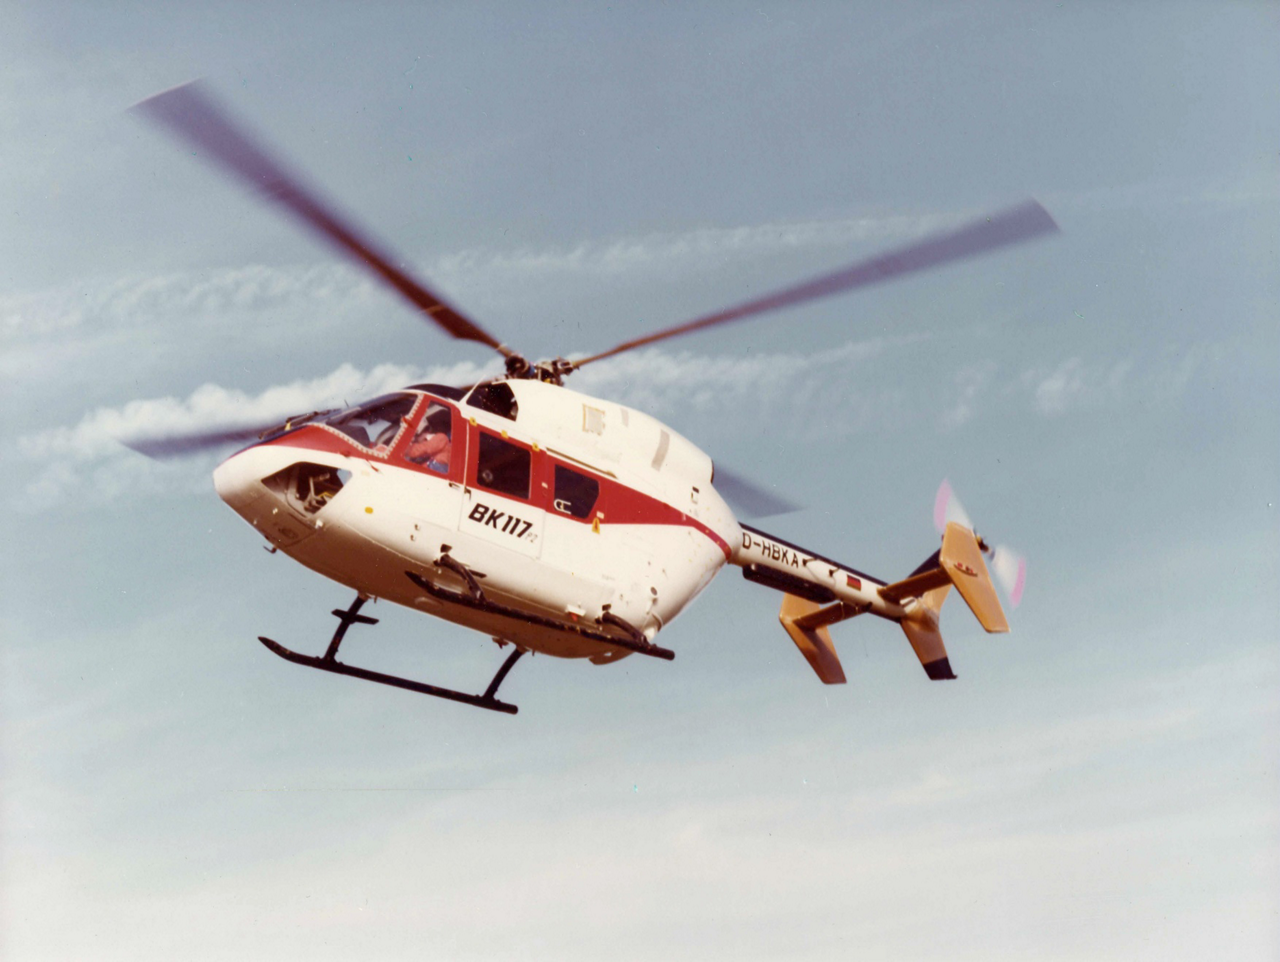 The BK117 helicopter, precursor to Airbus' H145, takes to the skies during its first flight in 1979.